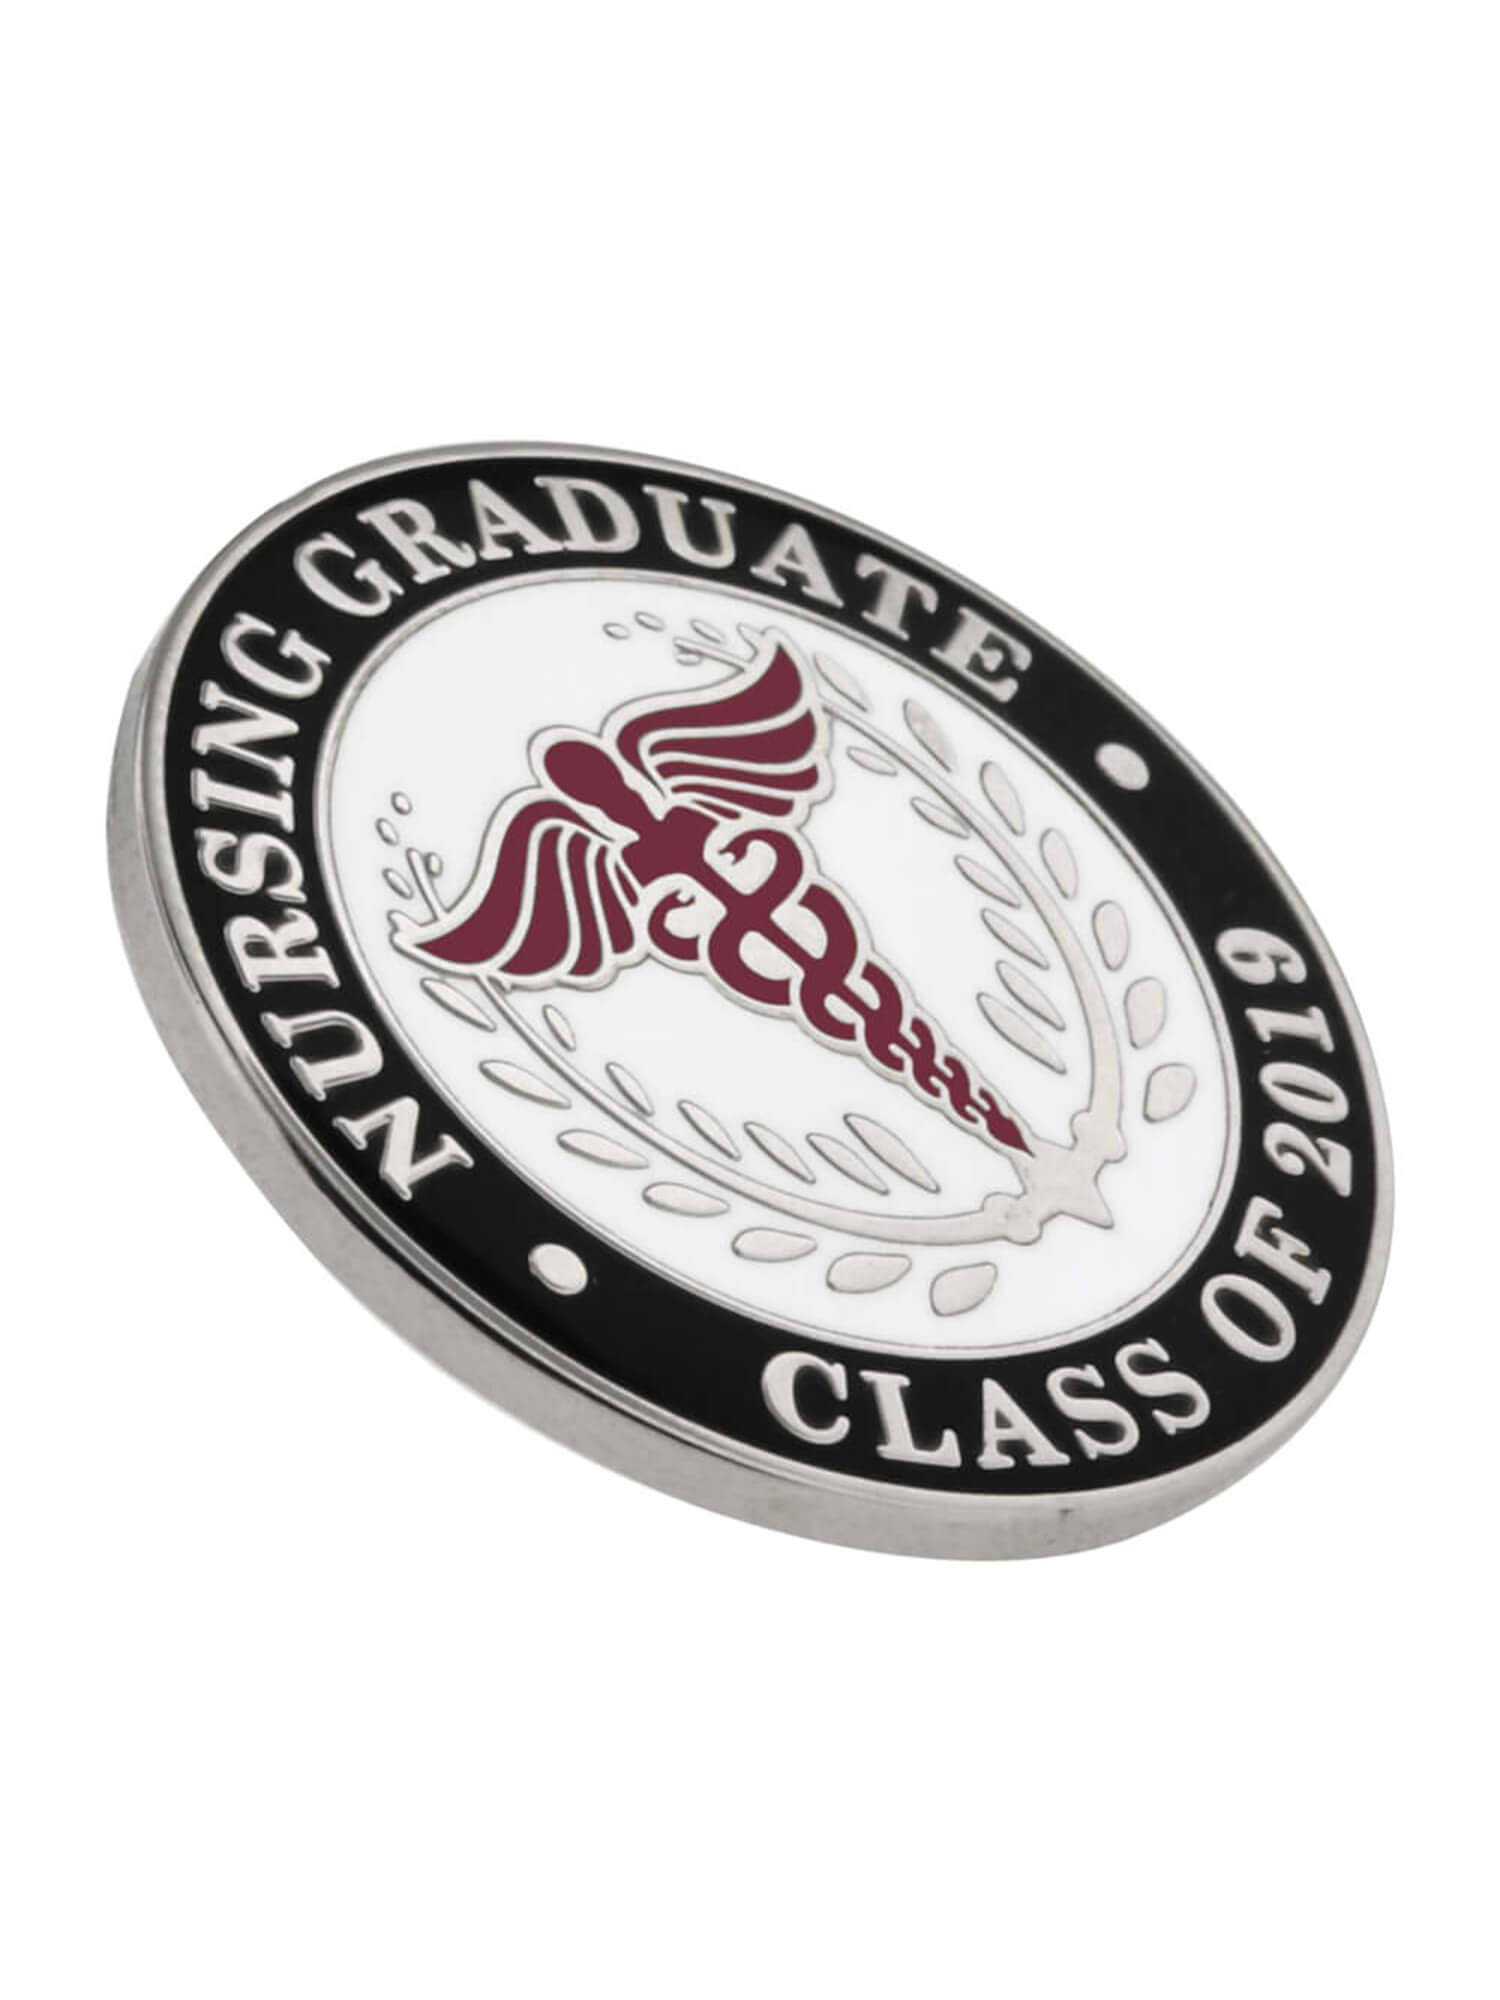 PinMart Class of 2019 Nursing Graduate Pin for Pinning Ceremony Lapel Pin by PinMart (Image #2)